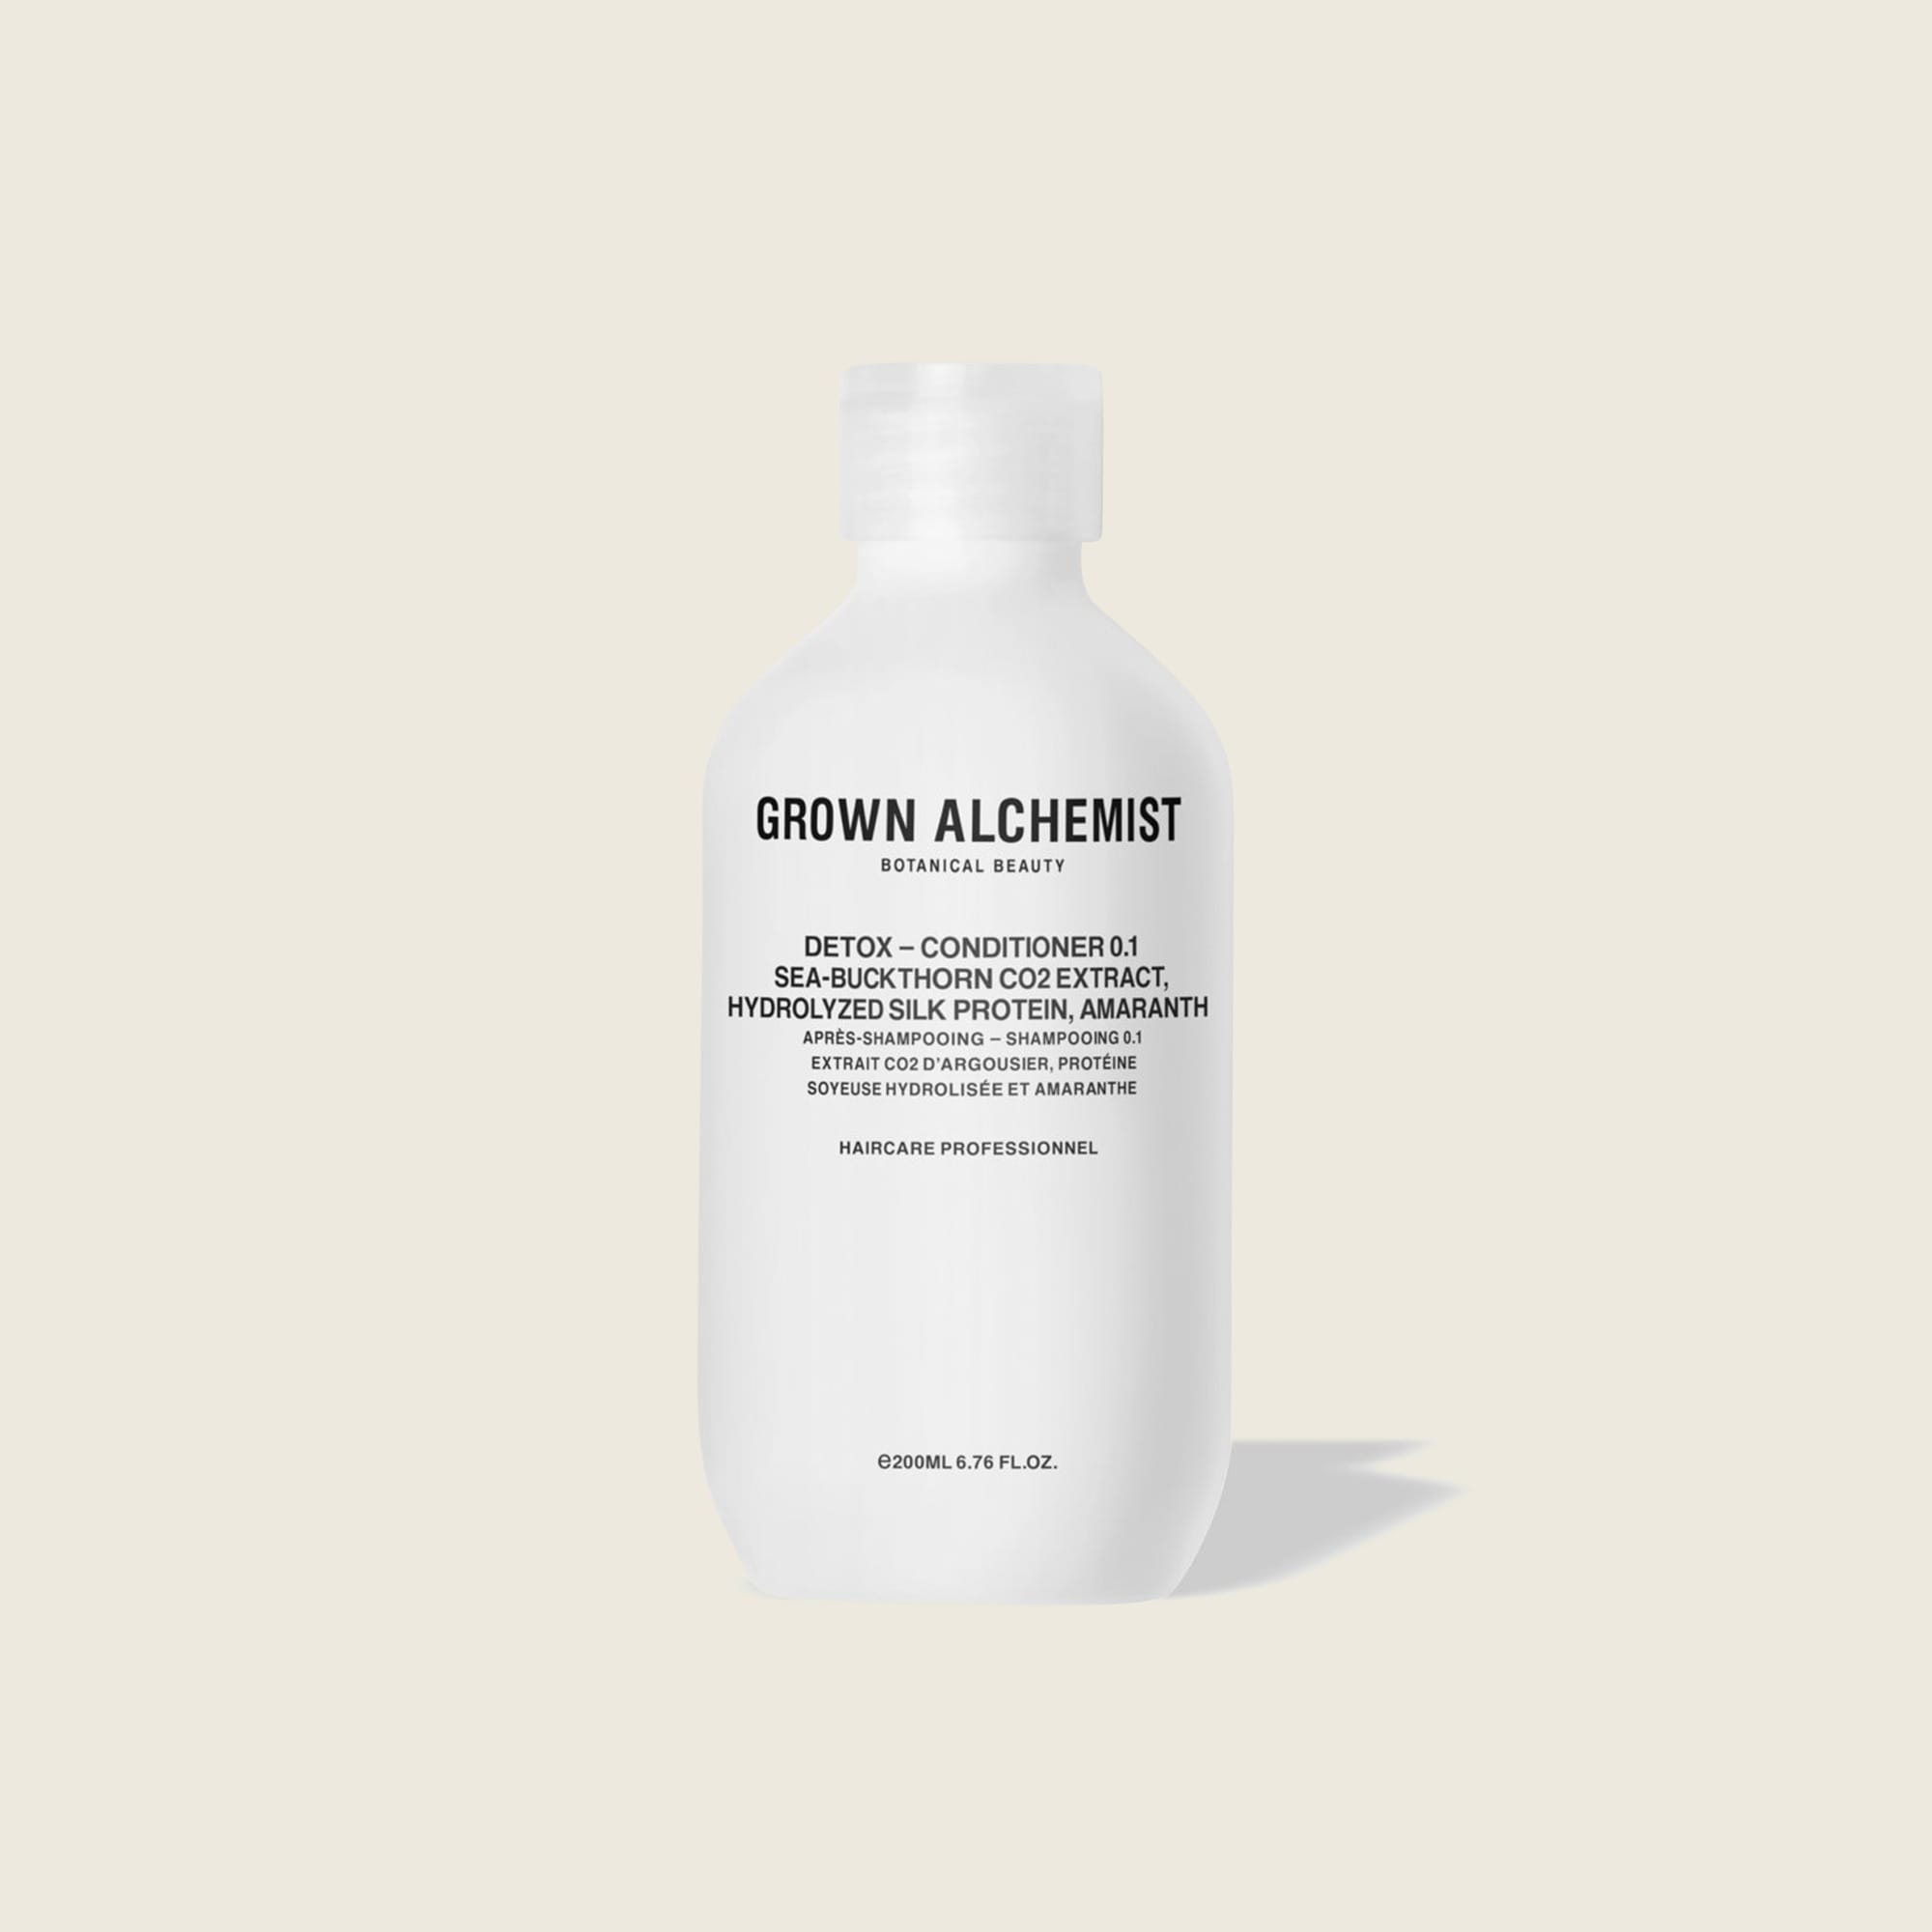 mens GROWN ALCHEMIST® 200 ml detox conditioner 0.1 - sea buckthorn CO2 extract, hydrolyzed silk protein and amaranth